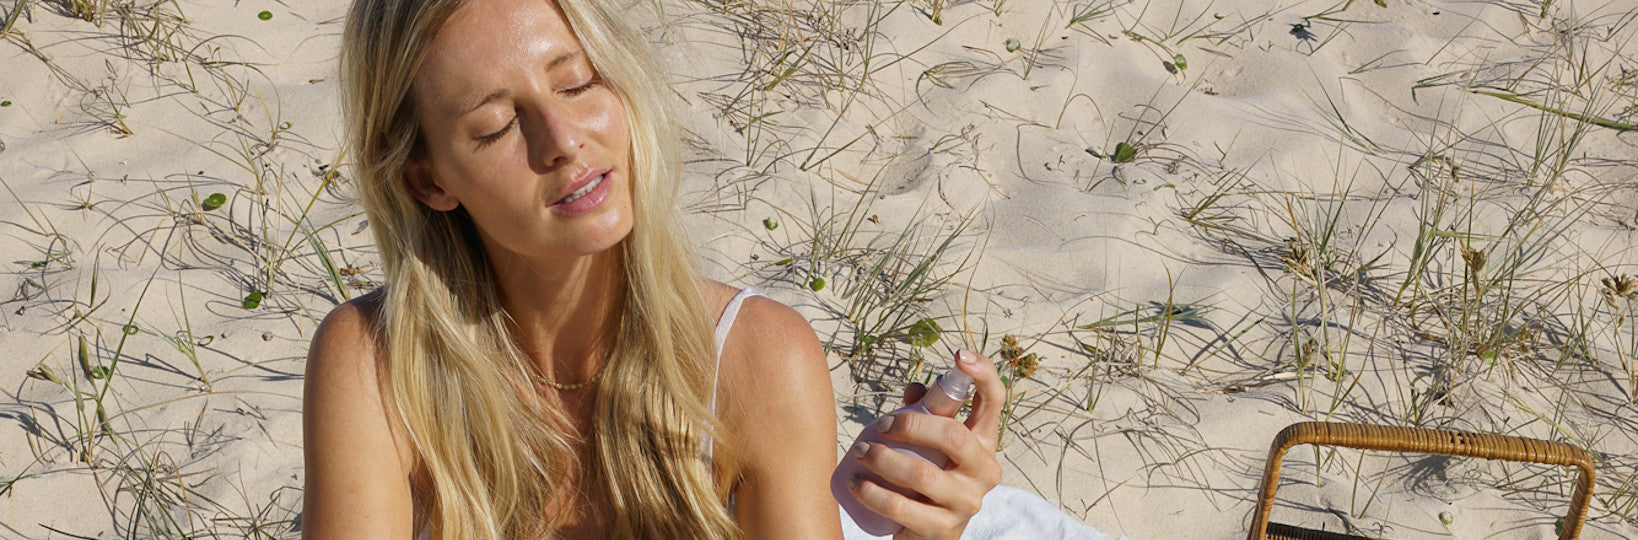 Woman with blonde hair sitting on the beach and spraying face mist onto her face